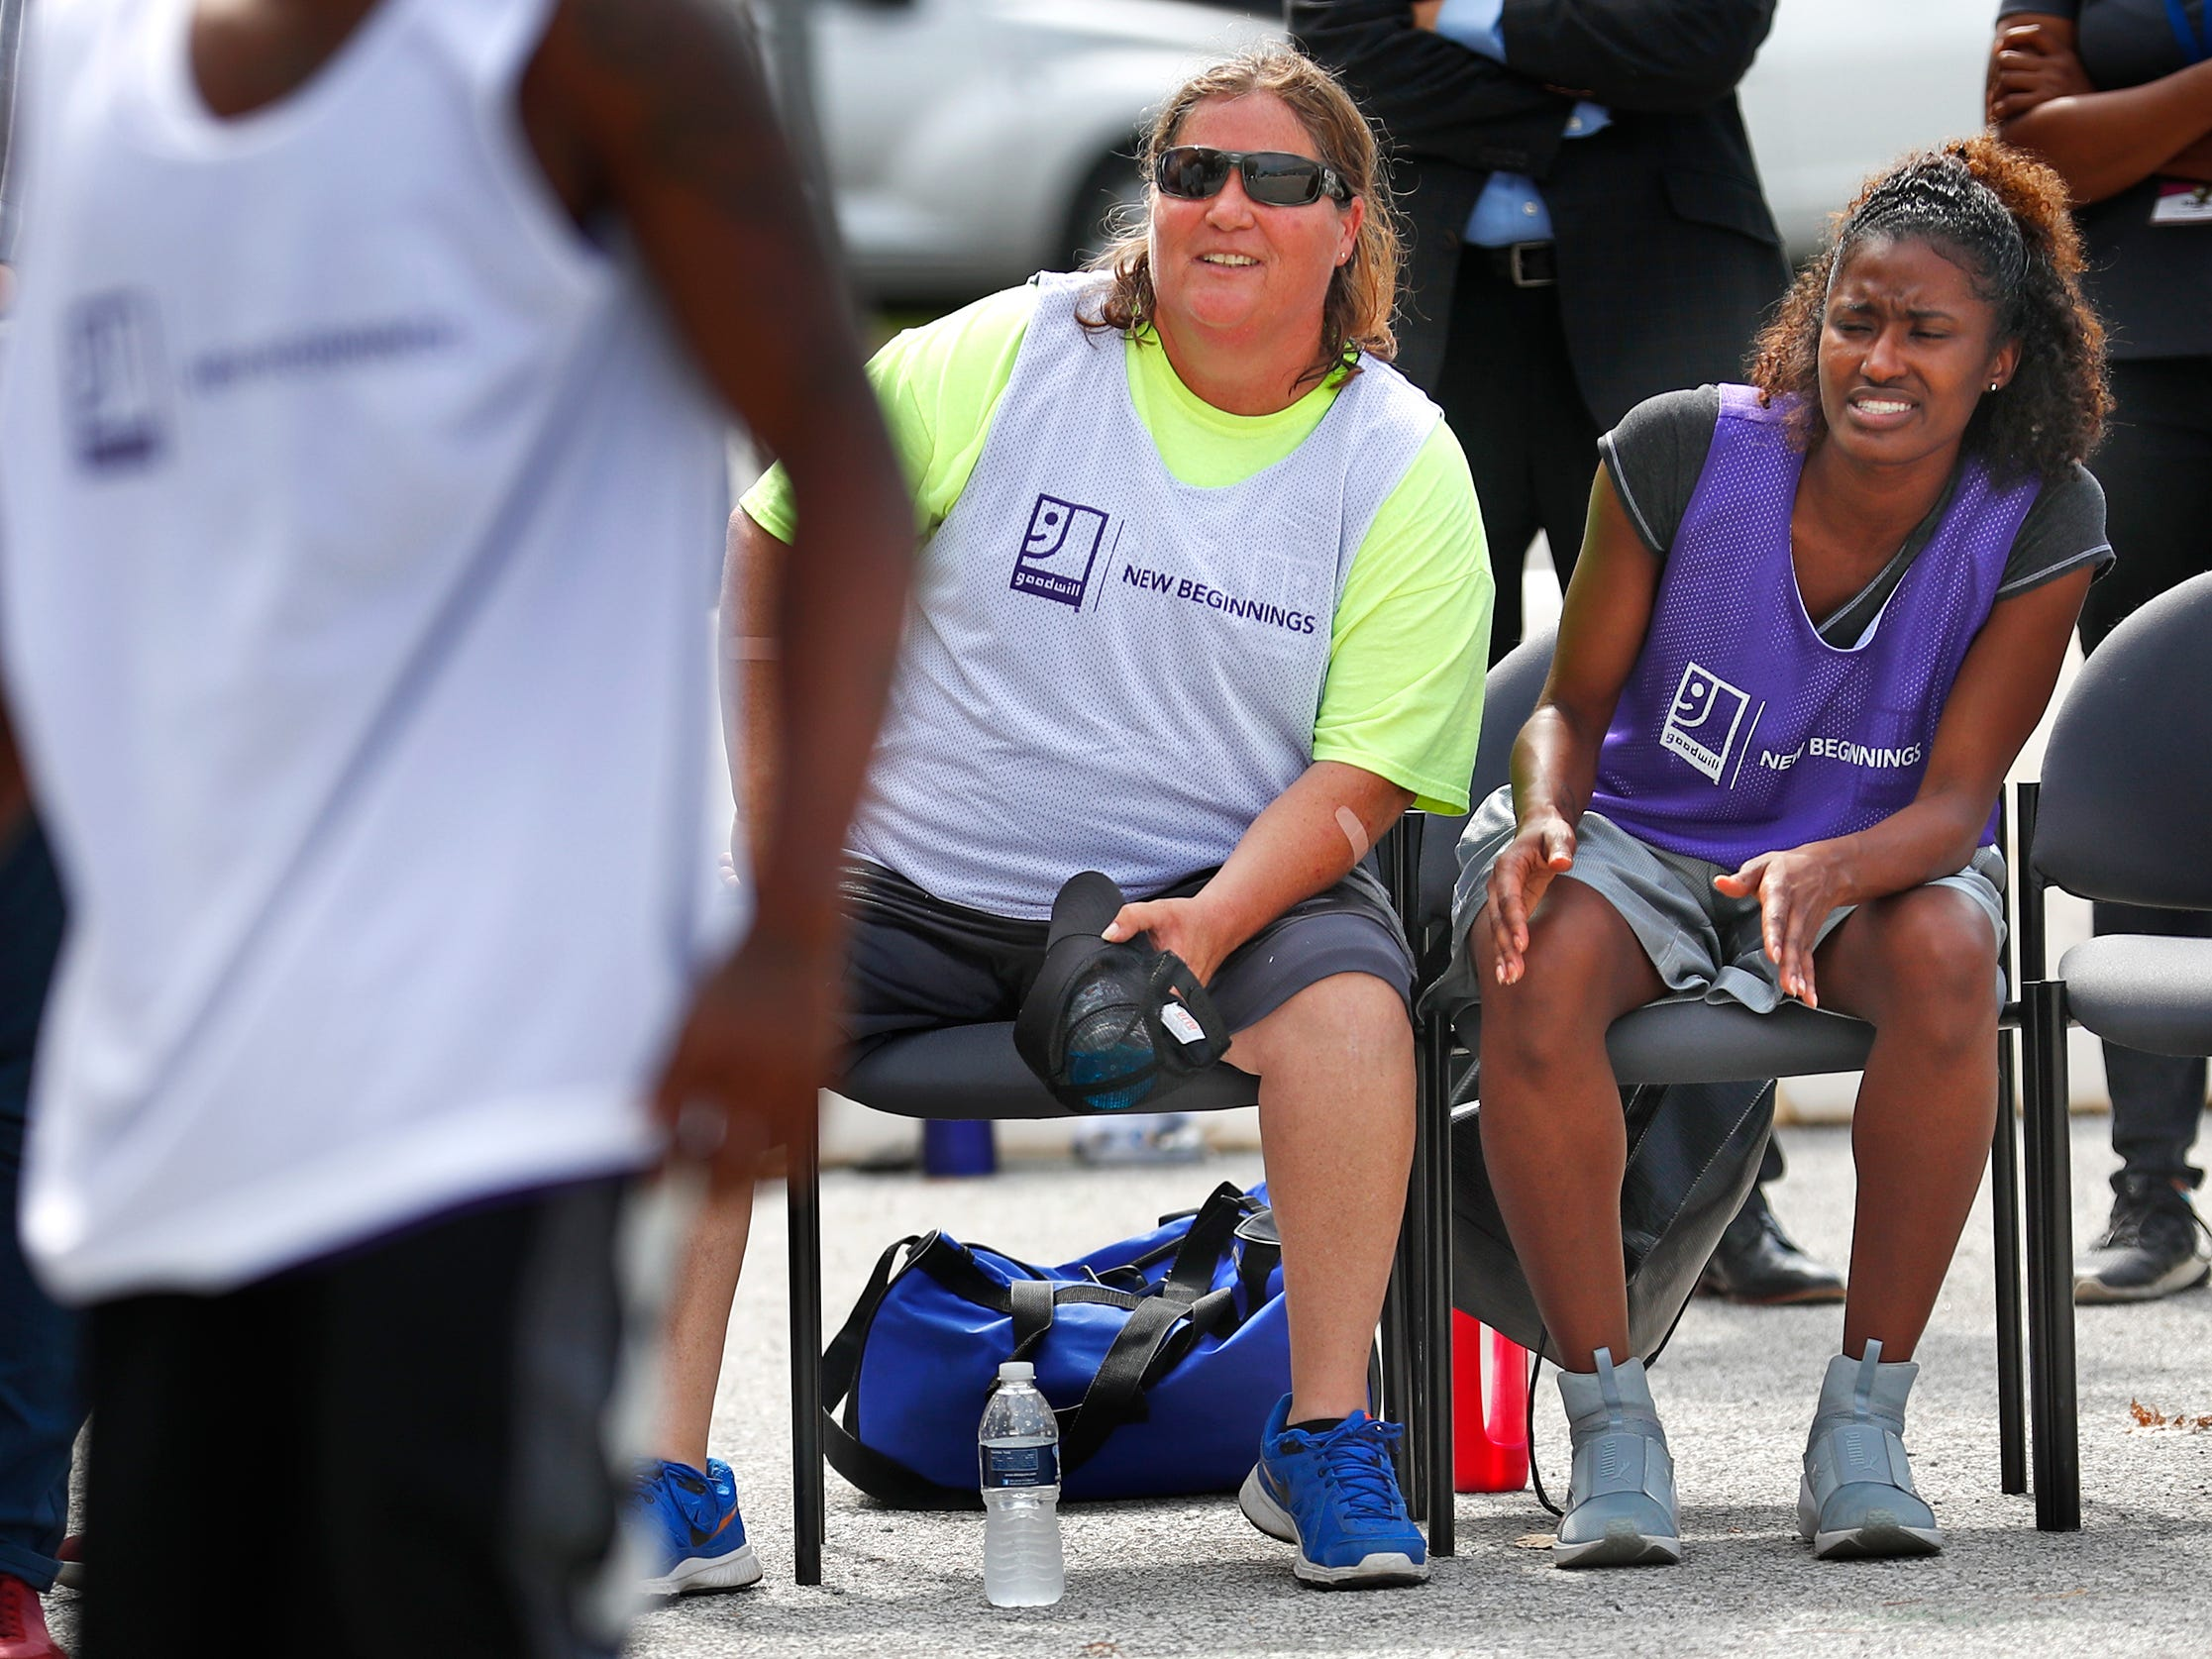 Tonya Surber, left, and Alexaundria Monroe, both with Marion County Probations, watch a game during a basketball game at Goodwill Commercial Services, Wednesday, Sept. 19, 2018.  Goodwill Industries of Central Indiana's New Beginnings hosted the 3-on-3 basketball tournament bringing together participants in New Beginnings, a six-month re-entry program for ex-offenders that works on job and life skills, with representatives from Goodwill, IMPD, the Mayor's office, Marion County Probation department and other services.  The goal is to celebrate the New Beginnings program while breaking down re-entry barriers through basketball.